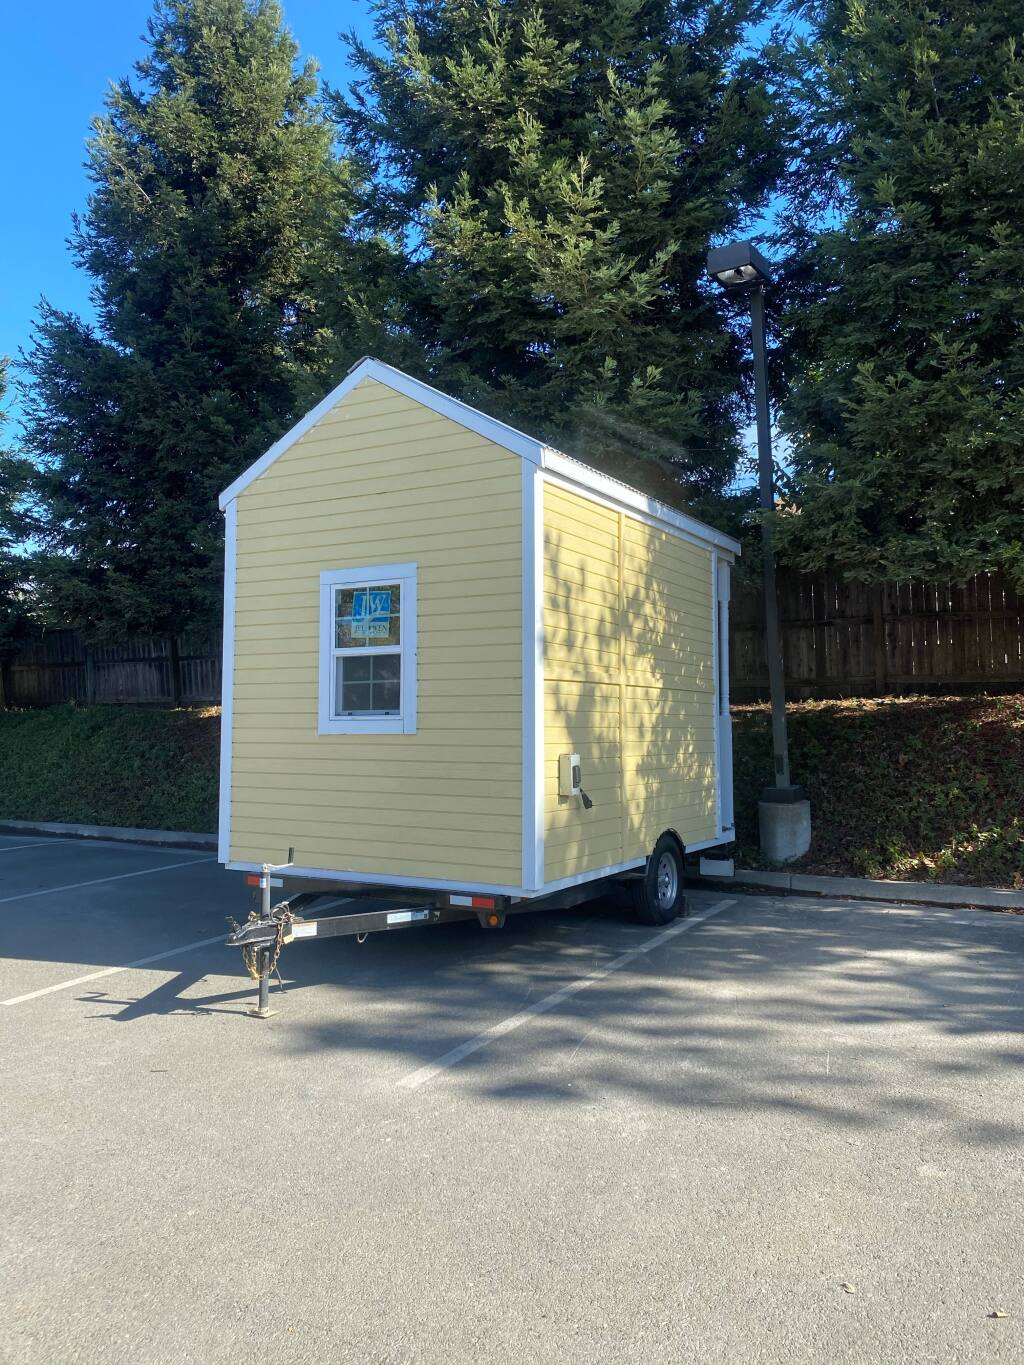 One of four tiny homes built by a cohort of high school students with the North Bay Construction Corps, which was being sold to raise money for future students, was stolen from a west Santa Rosa parking lot Jan. 15, 2021. (Kathy Goodacre)